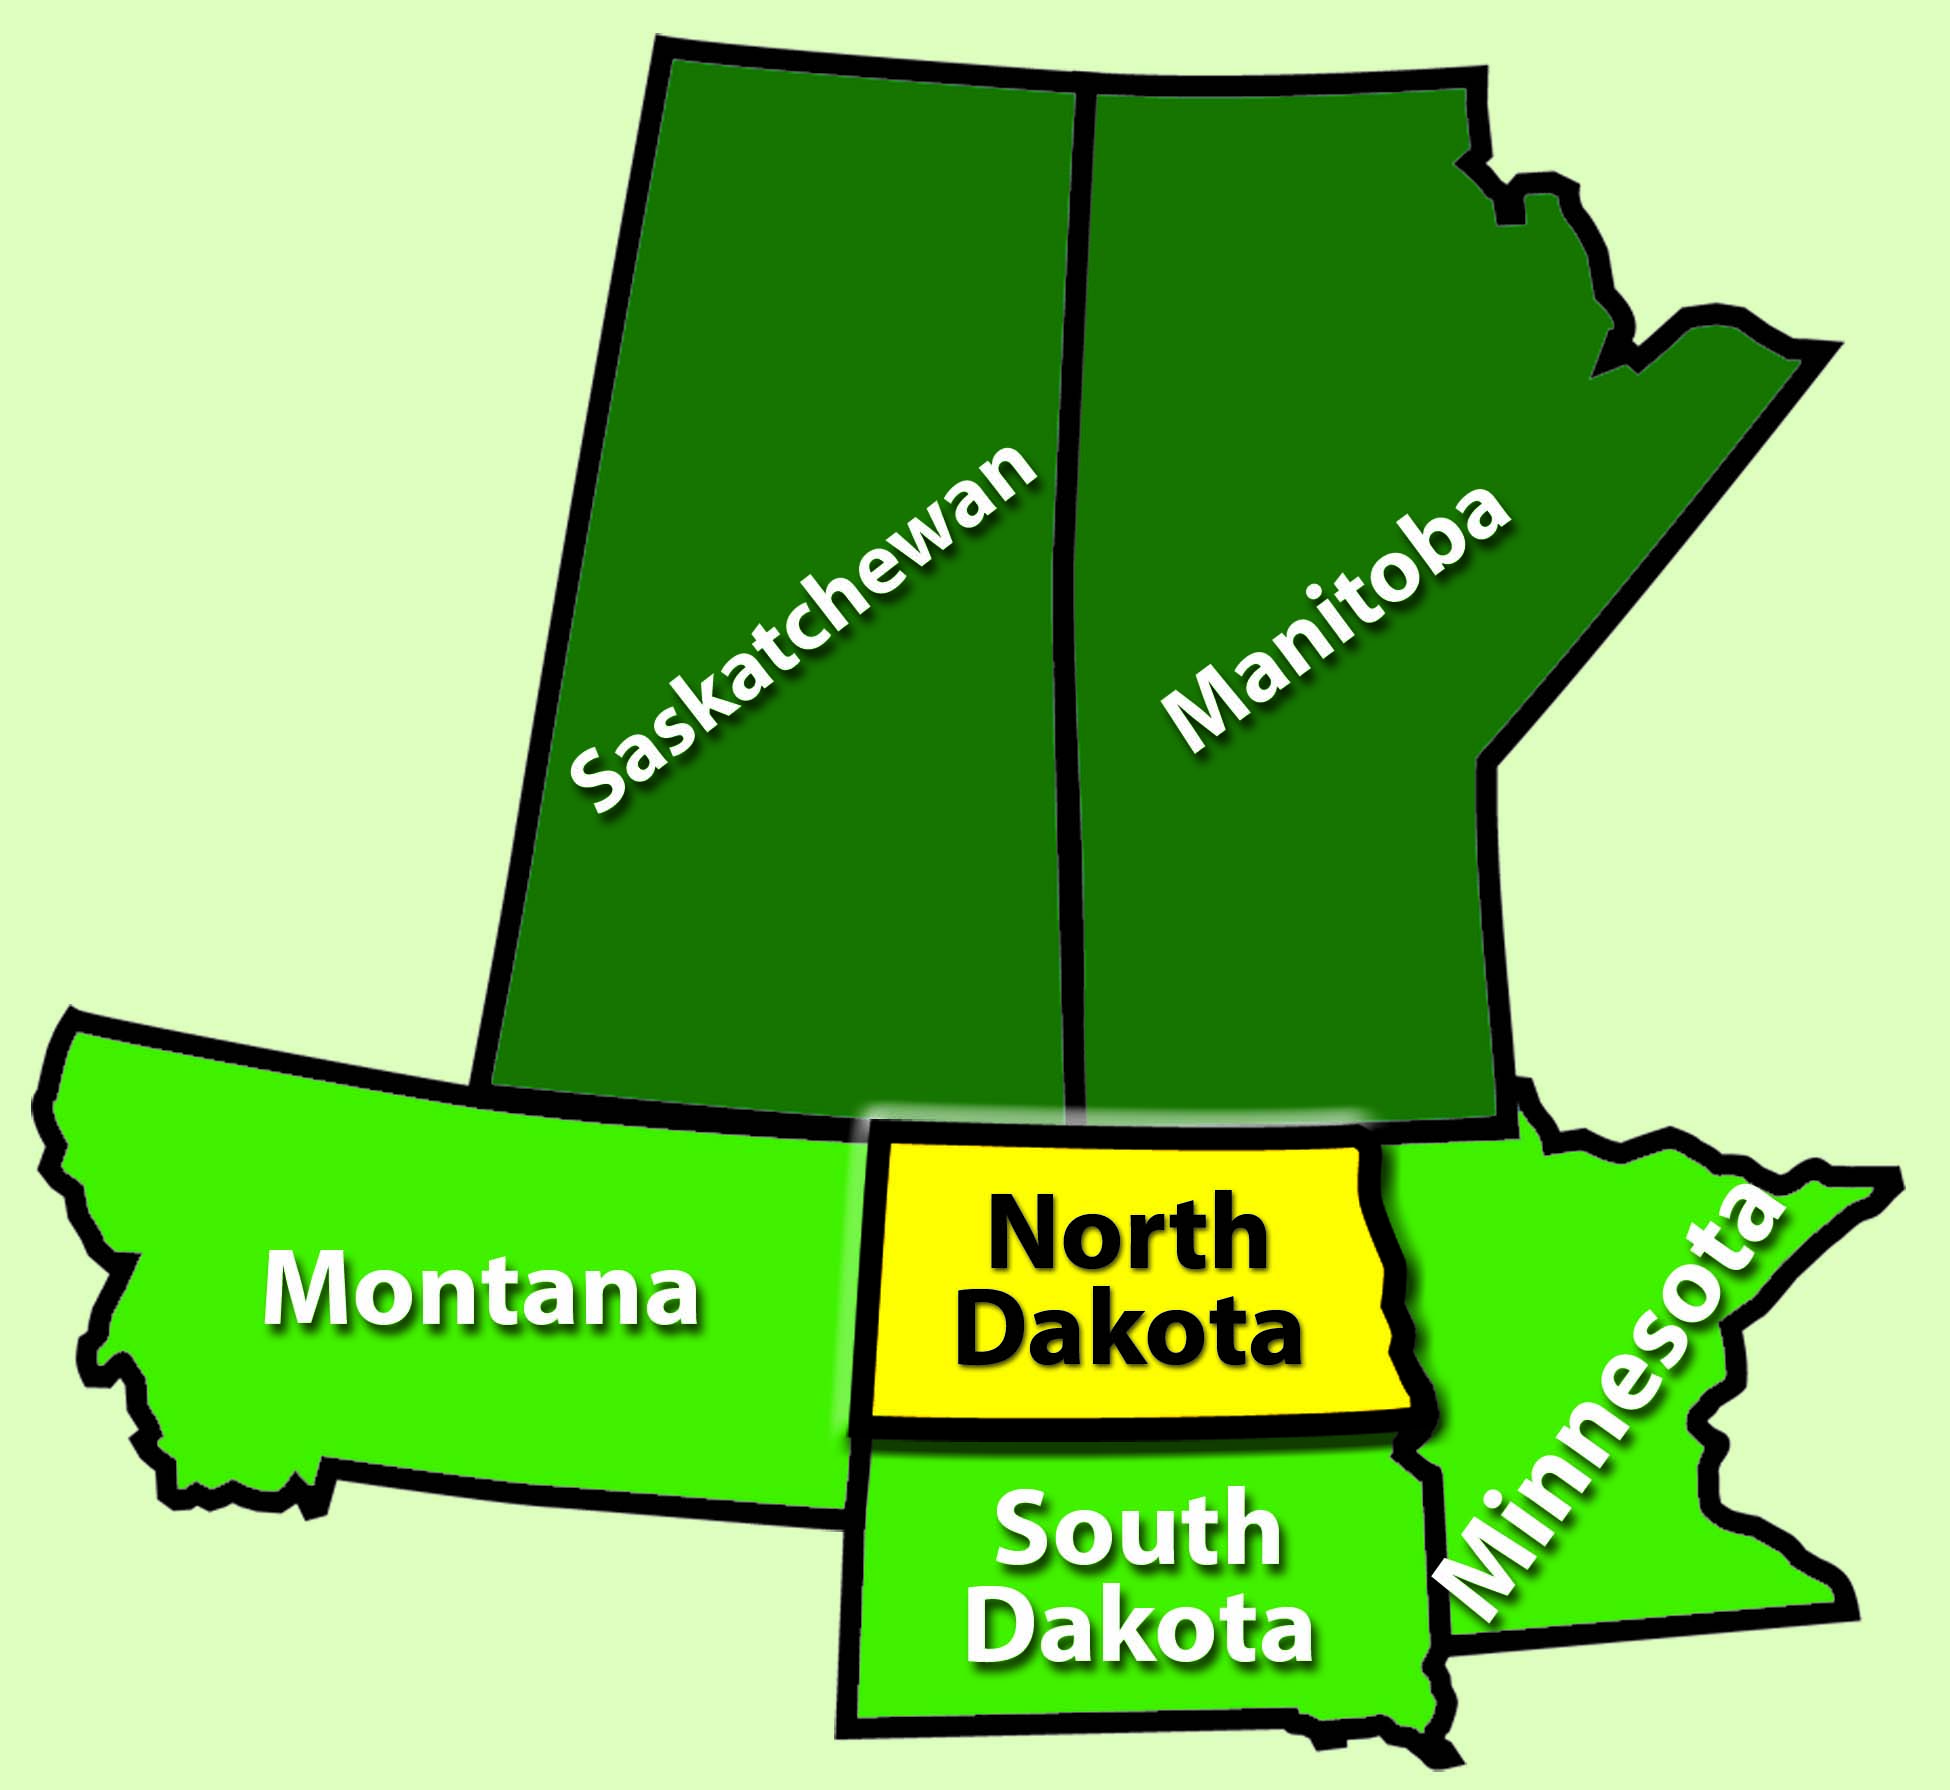 States bordering North Dakota